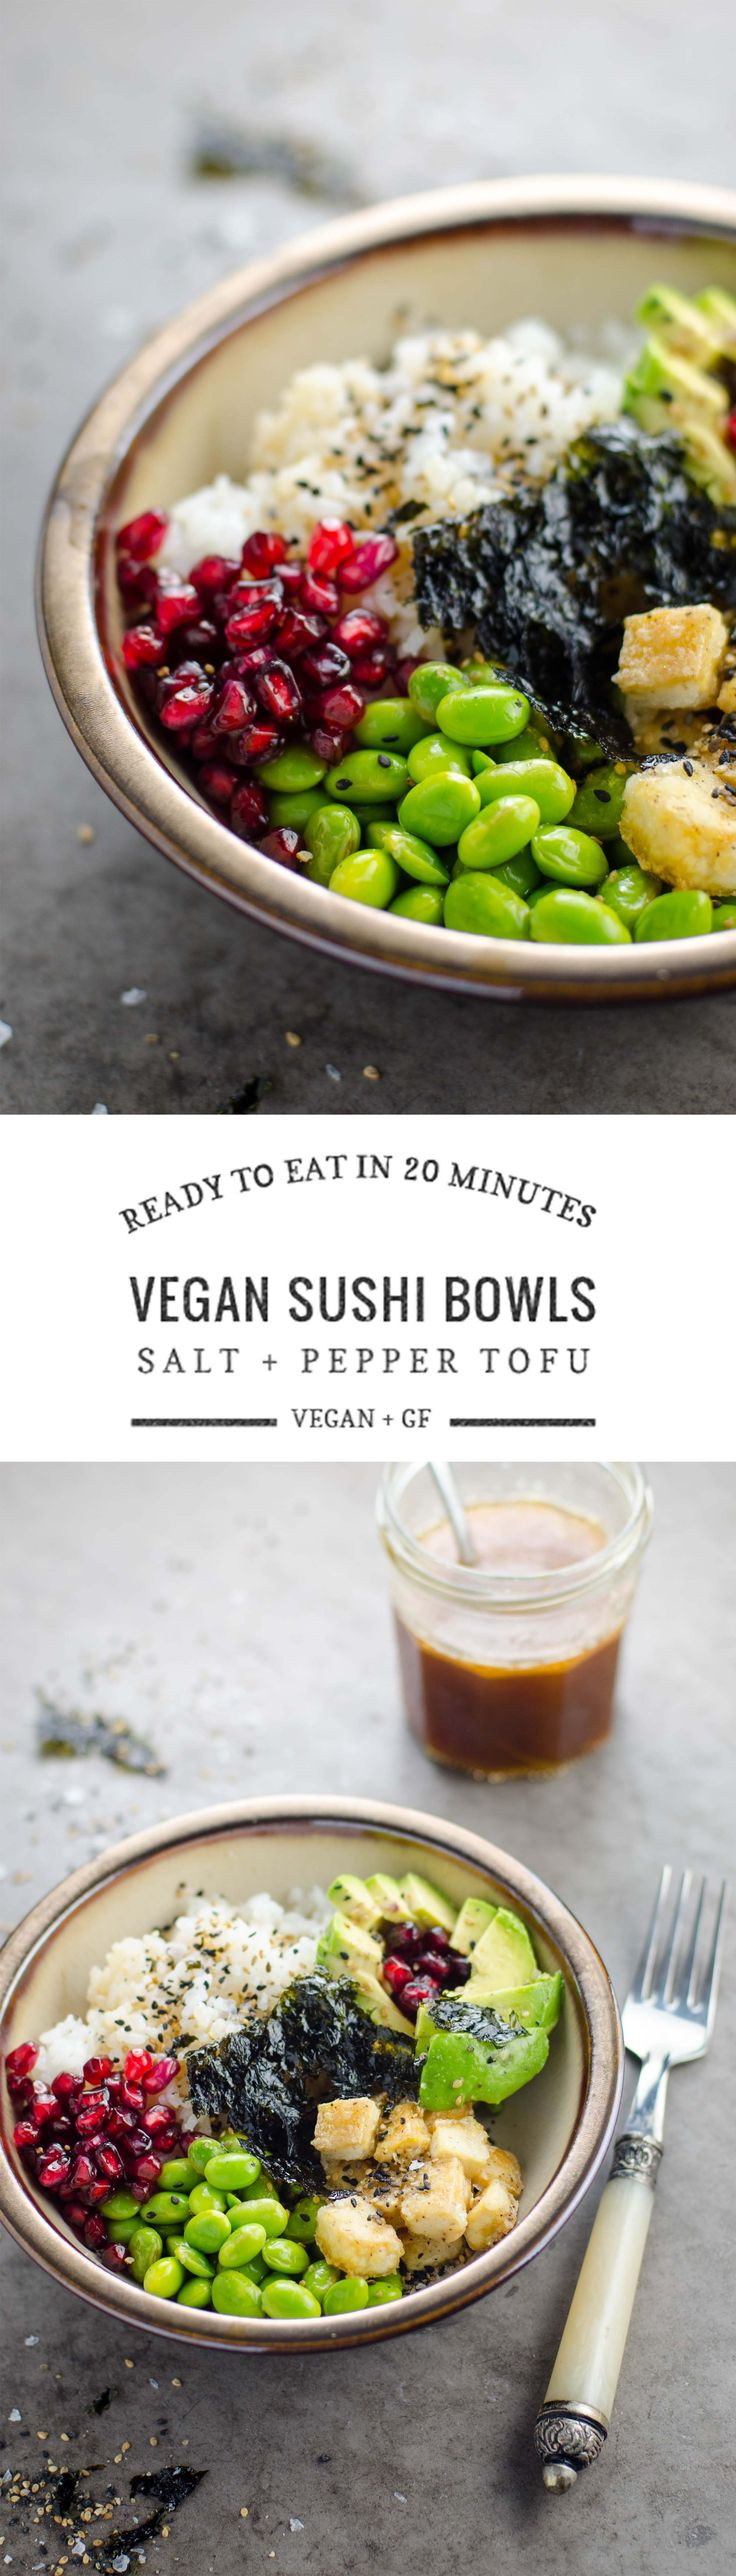 20 minute vegan sushi bowls with salt and pepper tofu, a light, citrusy dressing and plenty of vegetables are great for busy weeknights. Gluten free.